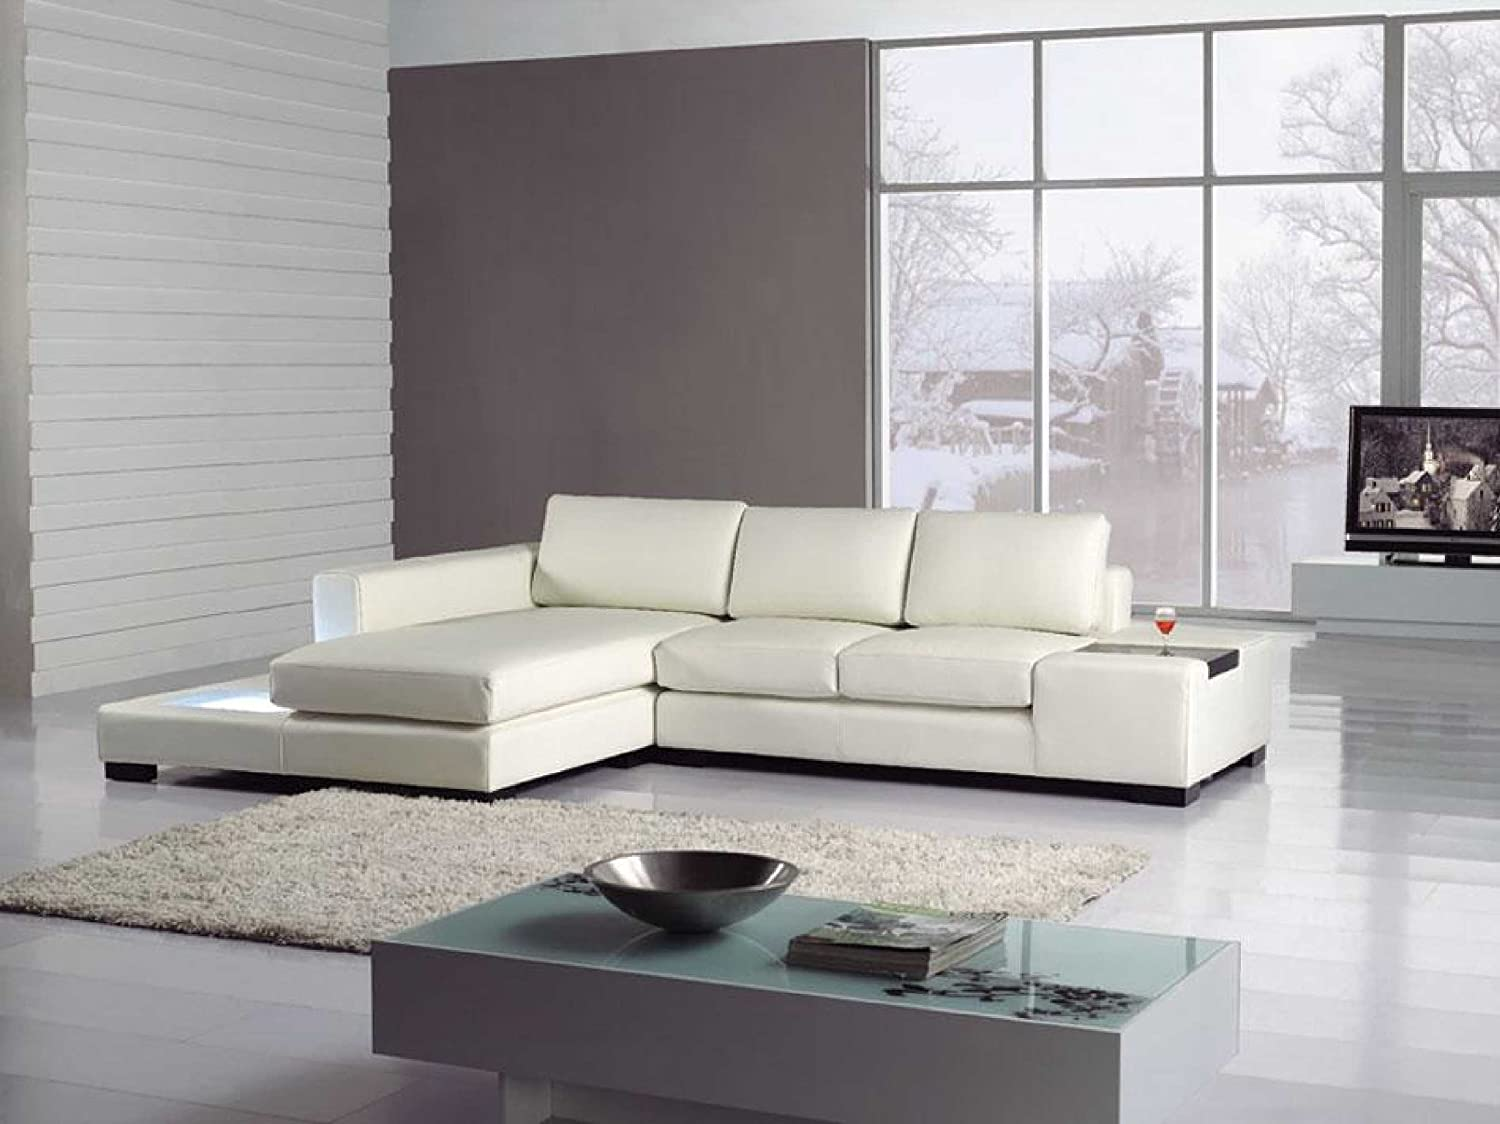 Amazon com t35 mini white bonded leather sectional with light kitchen dining